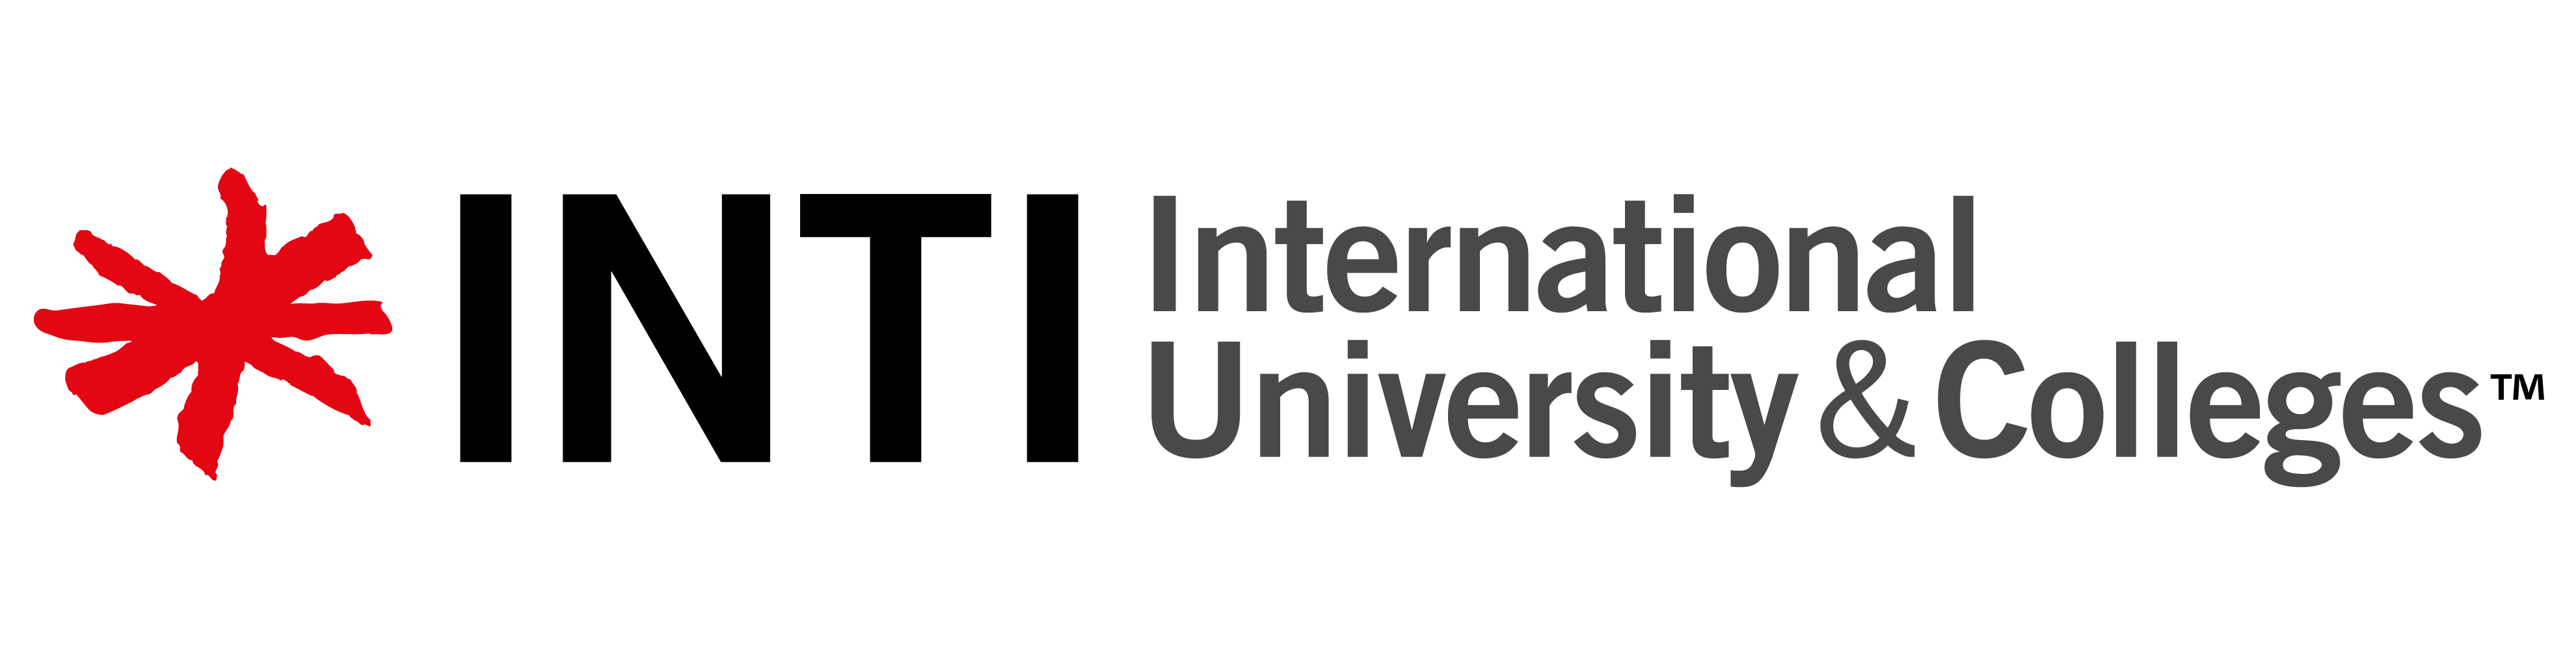 INTI International University & Colleges are private university colleges located in Malaysia. The main campus was initially known as INTI University College until 31 May 2010 when the Higher Education Ministry announced its upgrade to university status. INTI International University Study Abroad with MACES-Education Consultancy